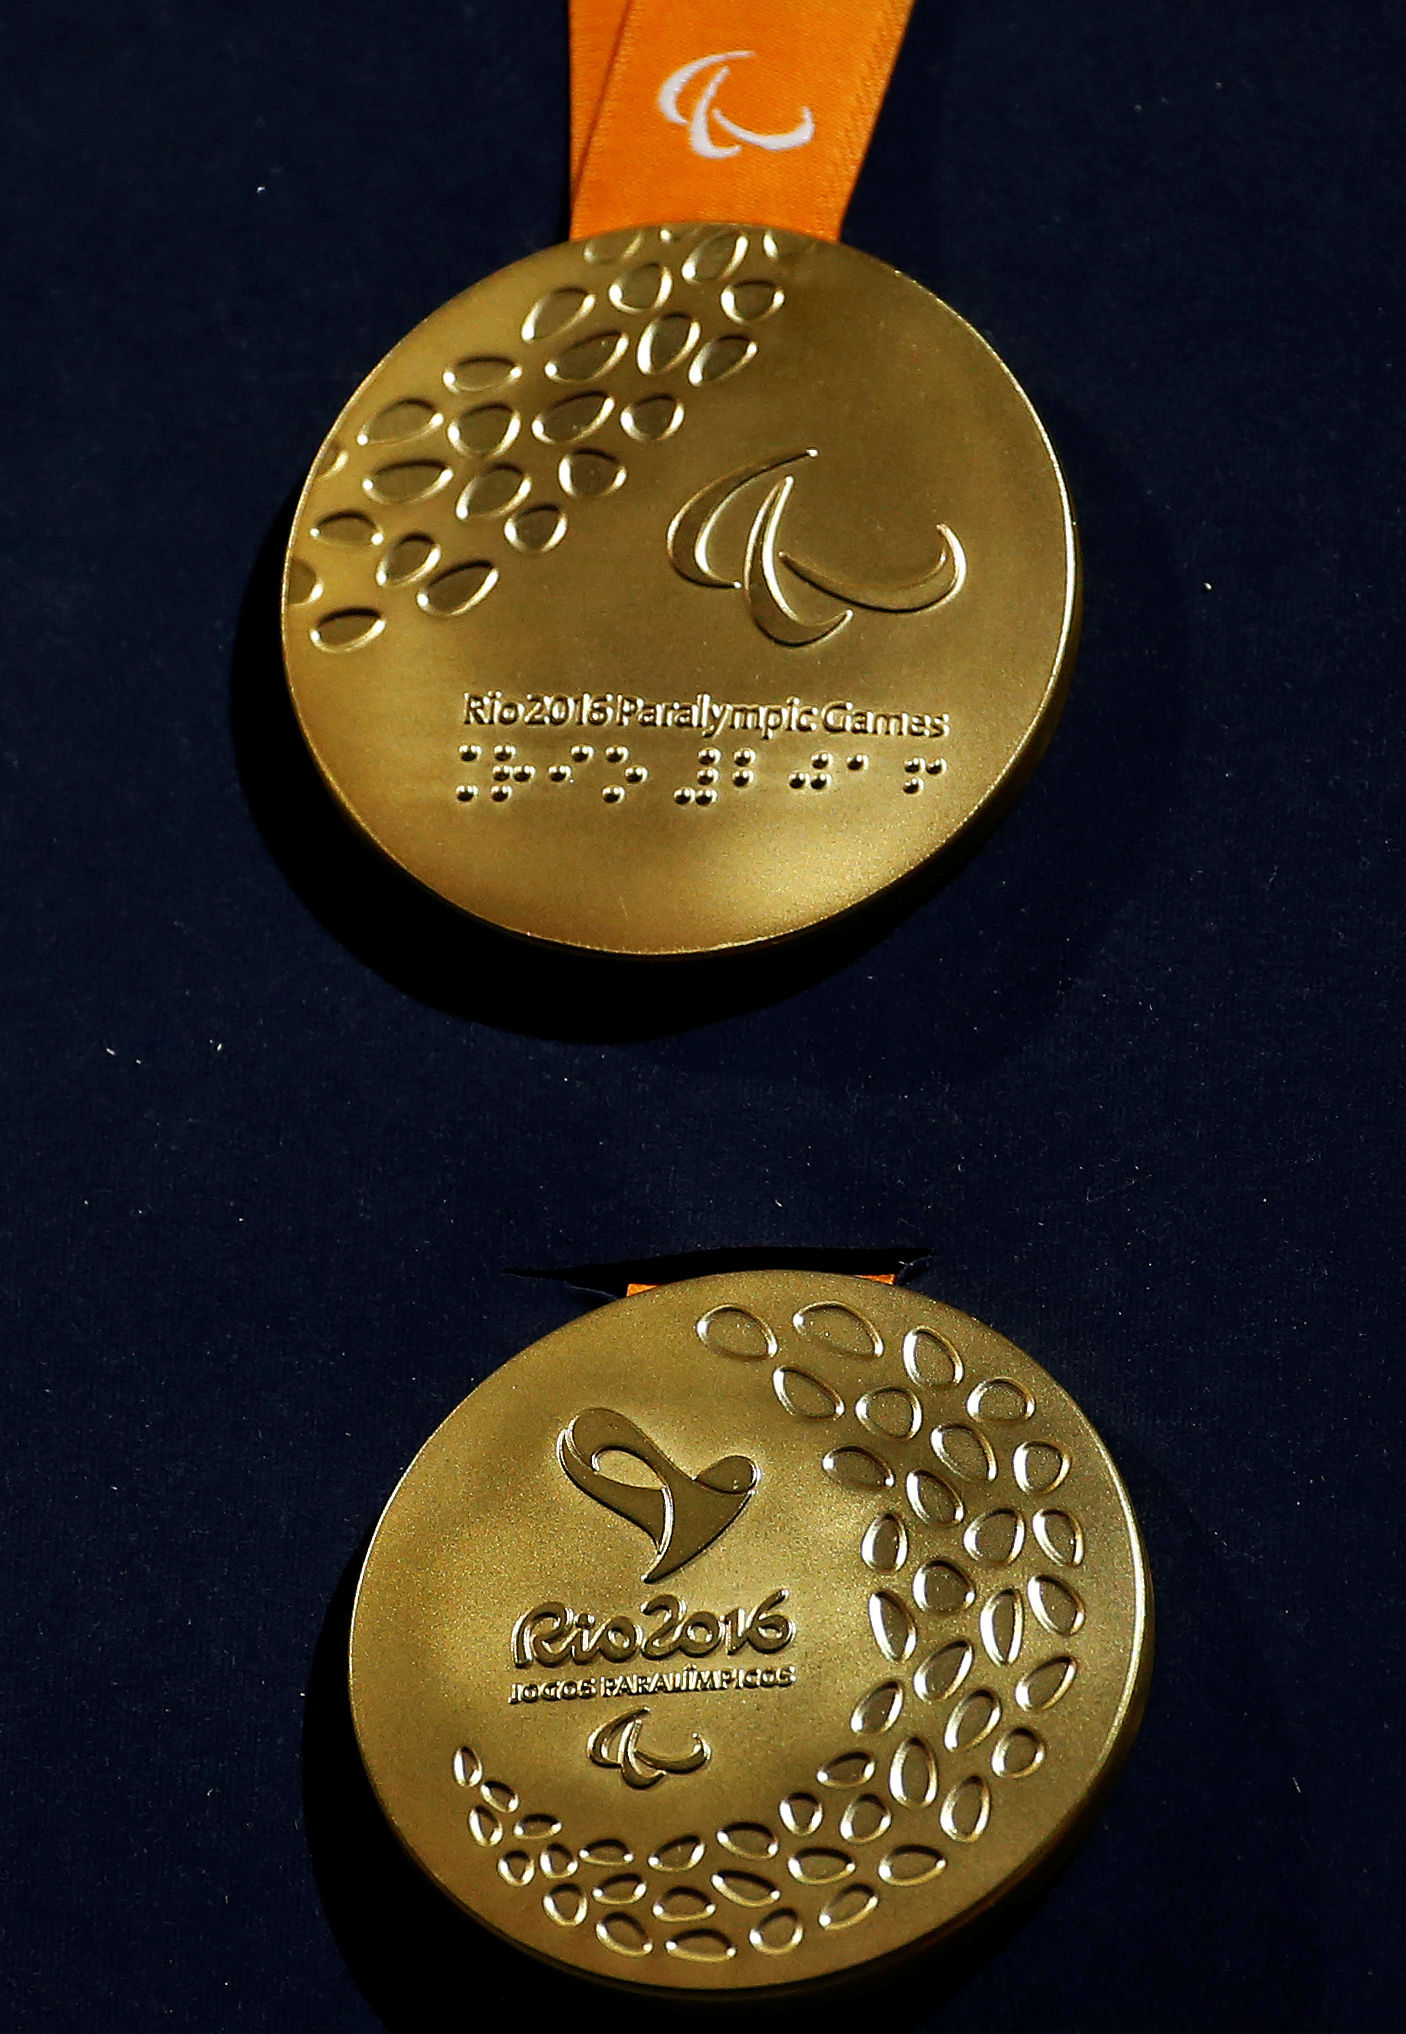 The Rio 2016 Paralympic gold medal (Reuters/Sergio Moraes)